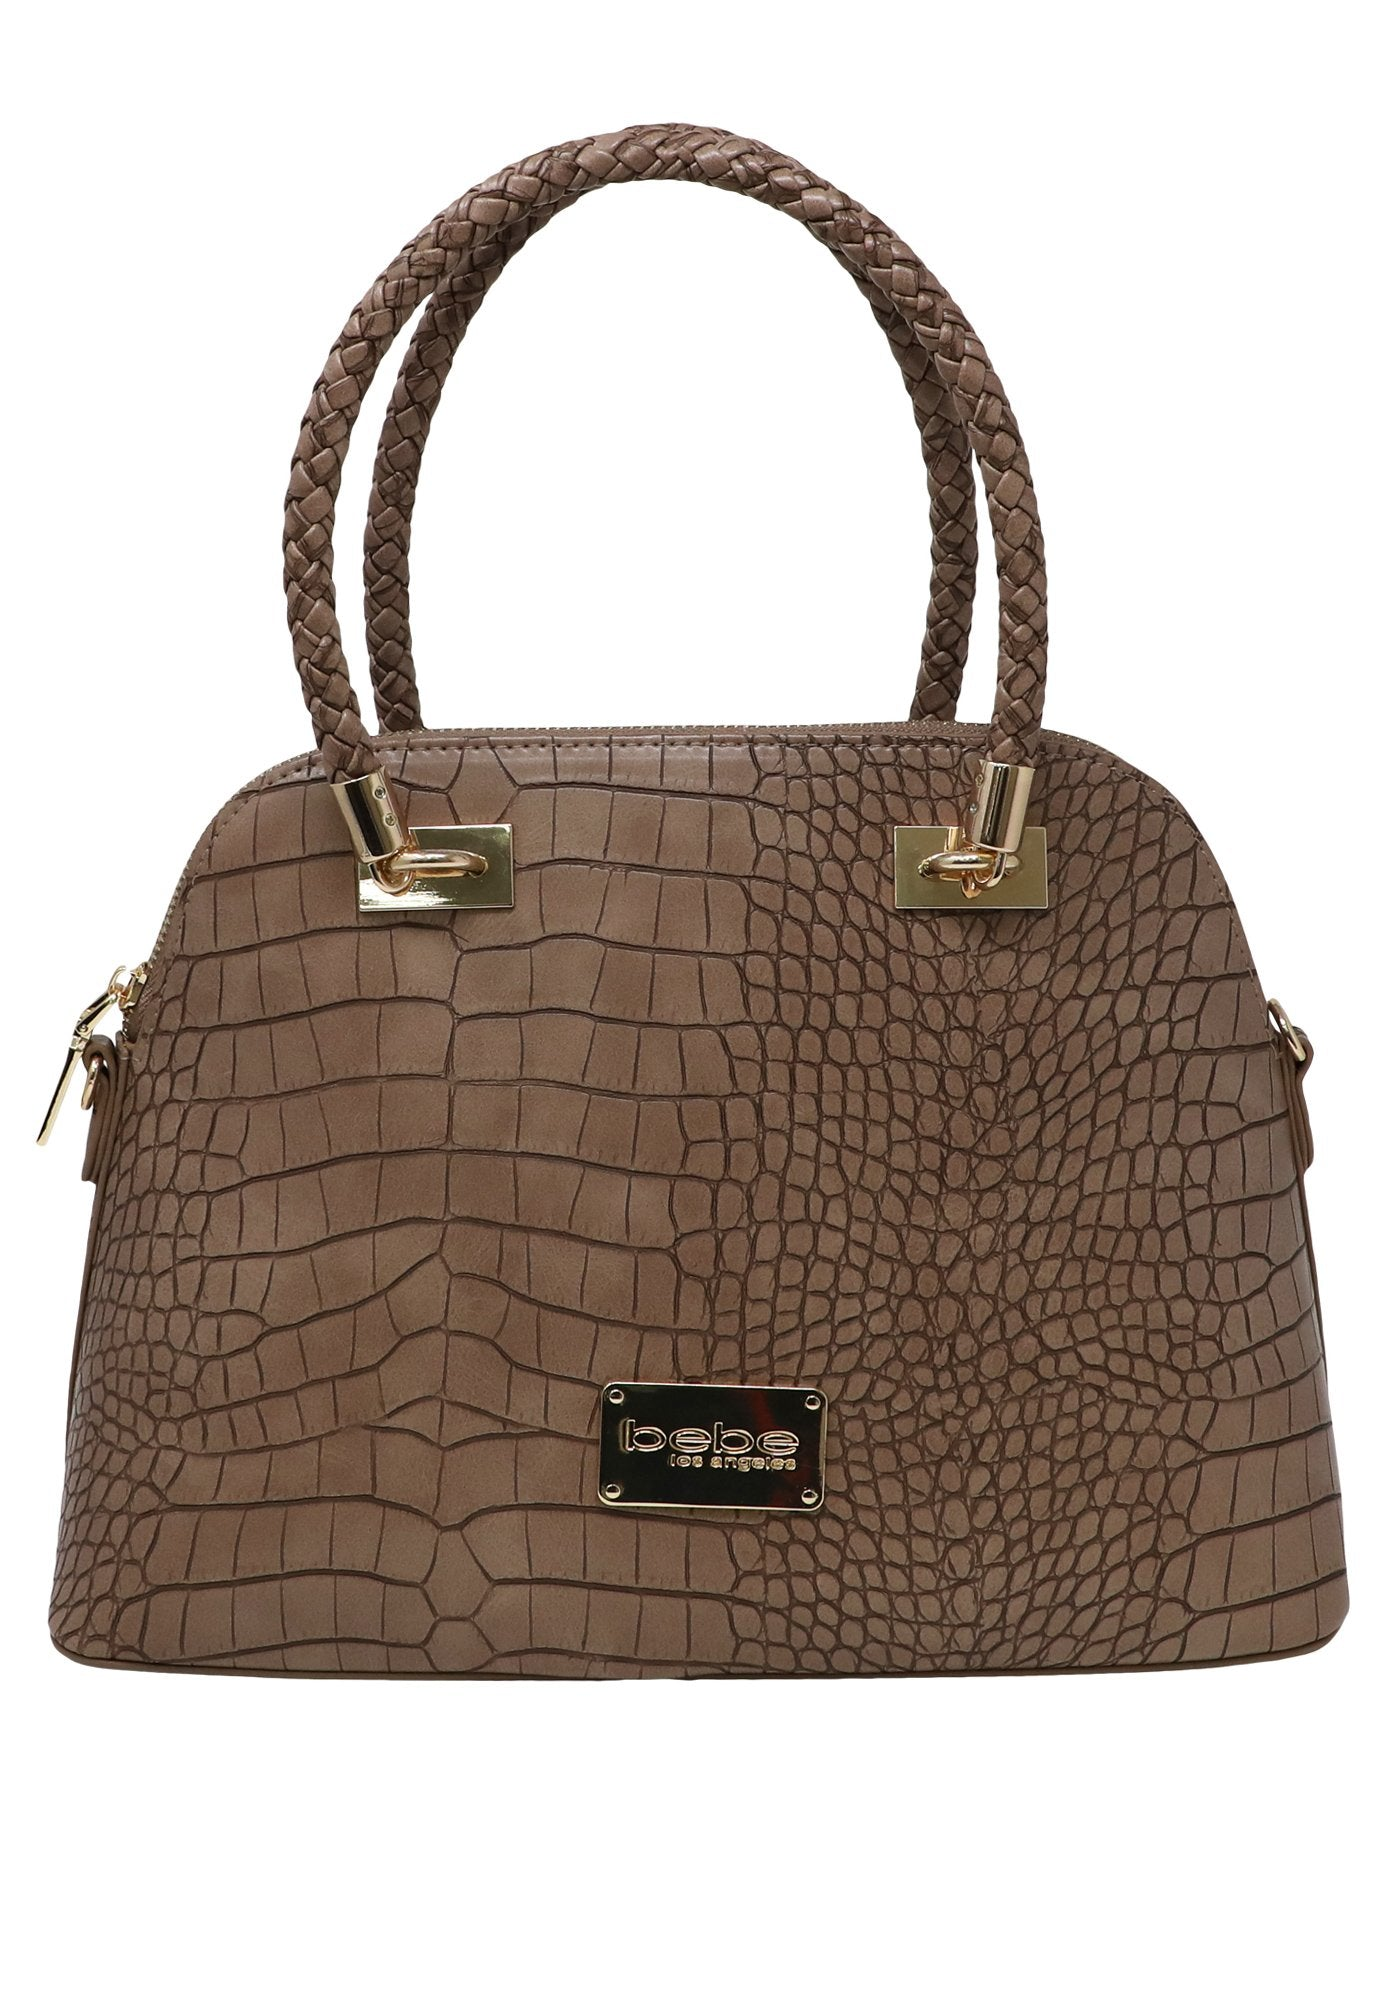 Bebe Women's Natalie Croc Dome Bag, Size OS in Taupe Polyurethane